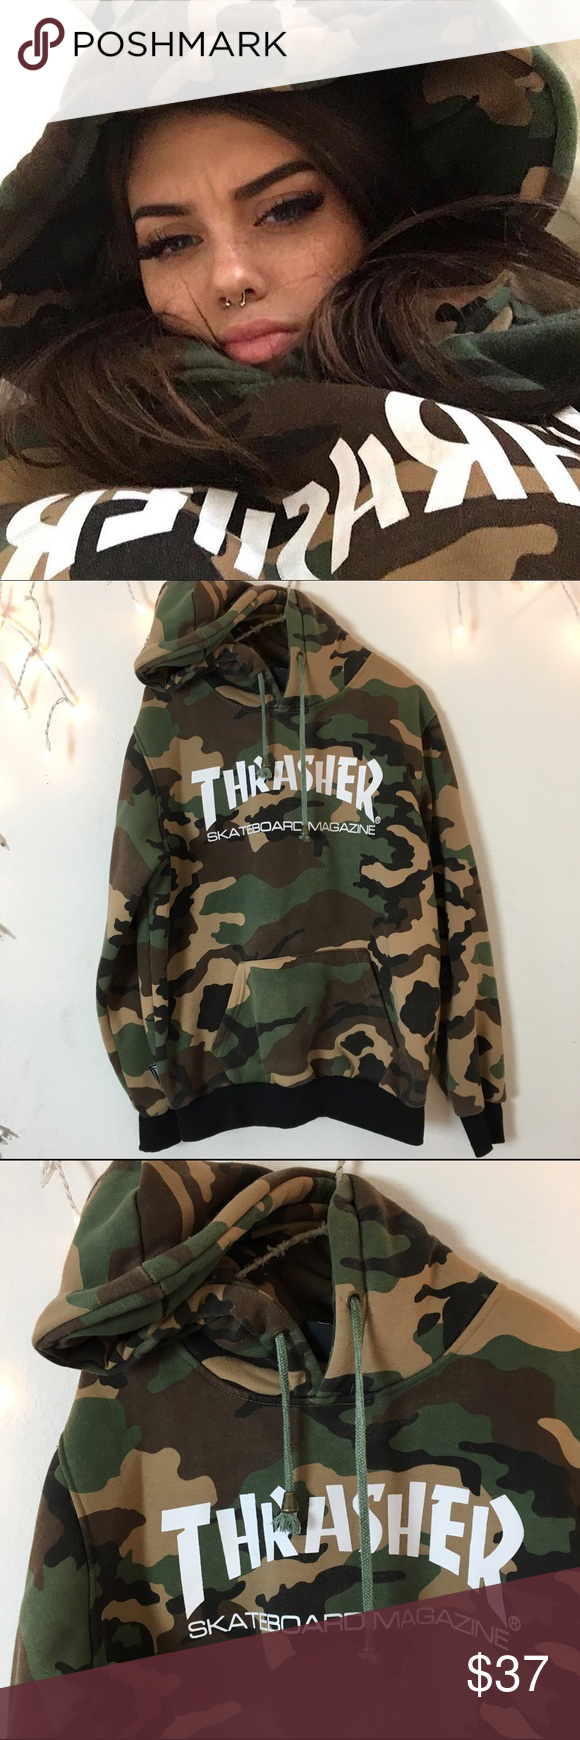 e8657b1b0346 Thrasher Camo Sweater Hoodie Authentic thrasher hoodie. Sold out. Super  Duper soft inside fleece material Best for women s small or medium  oversized fit as ...